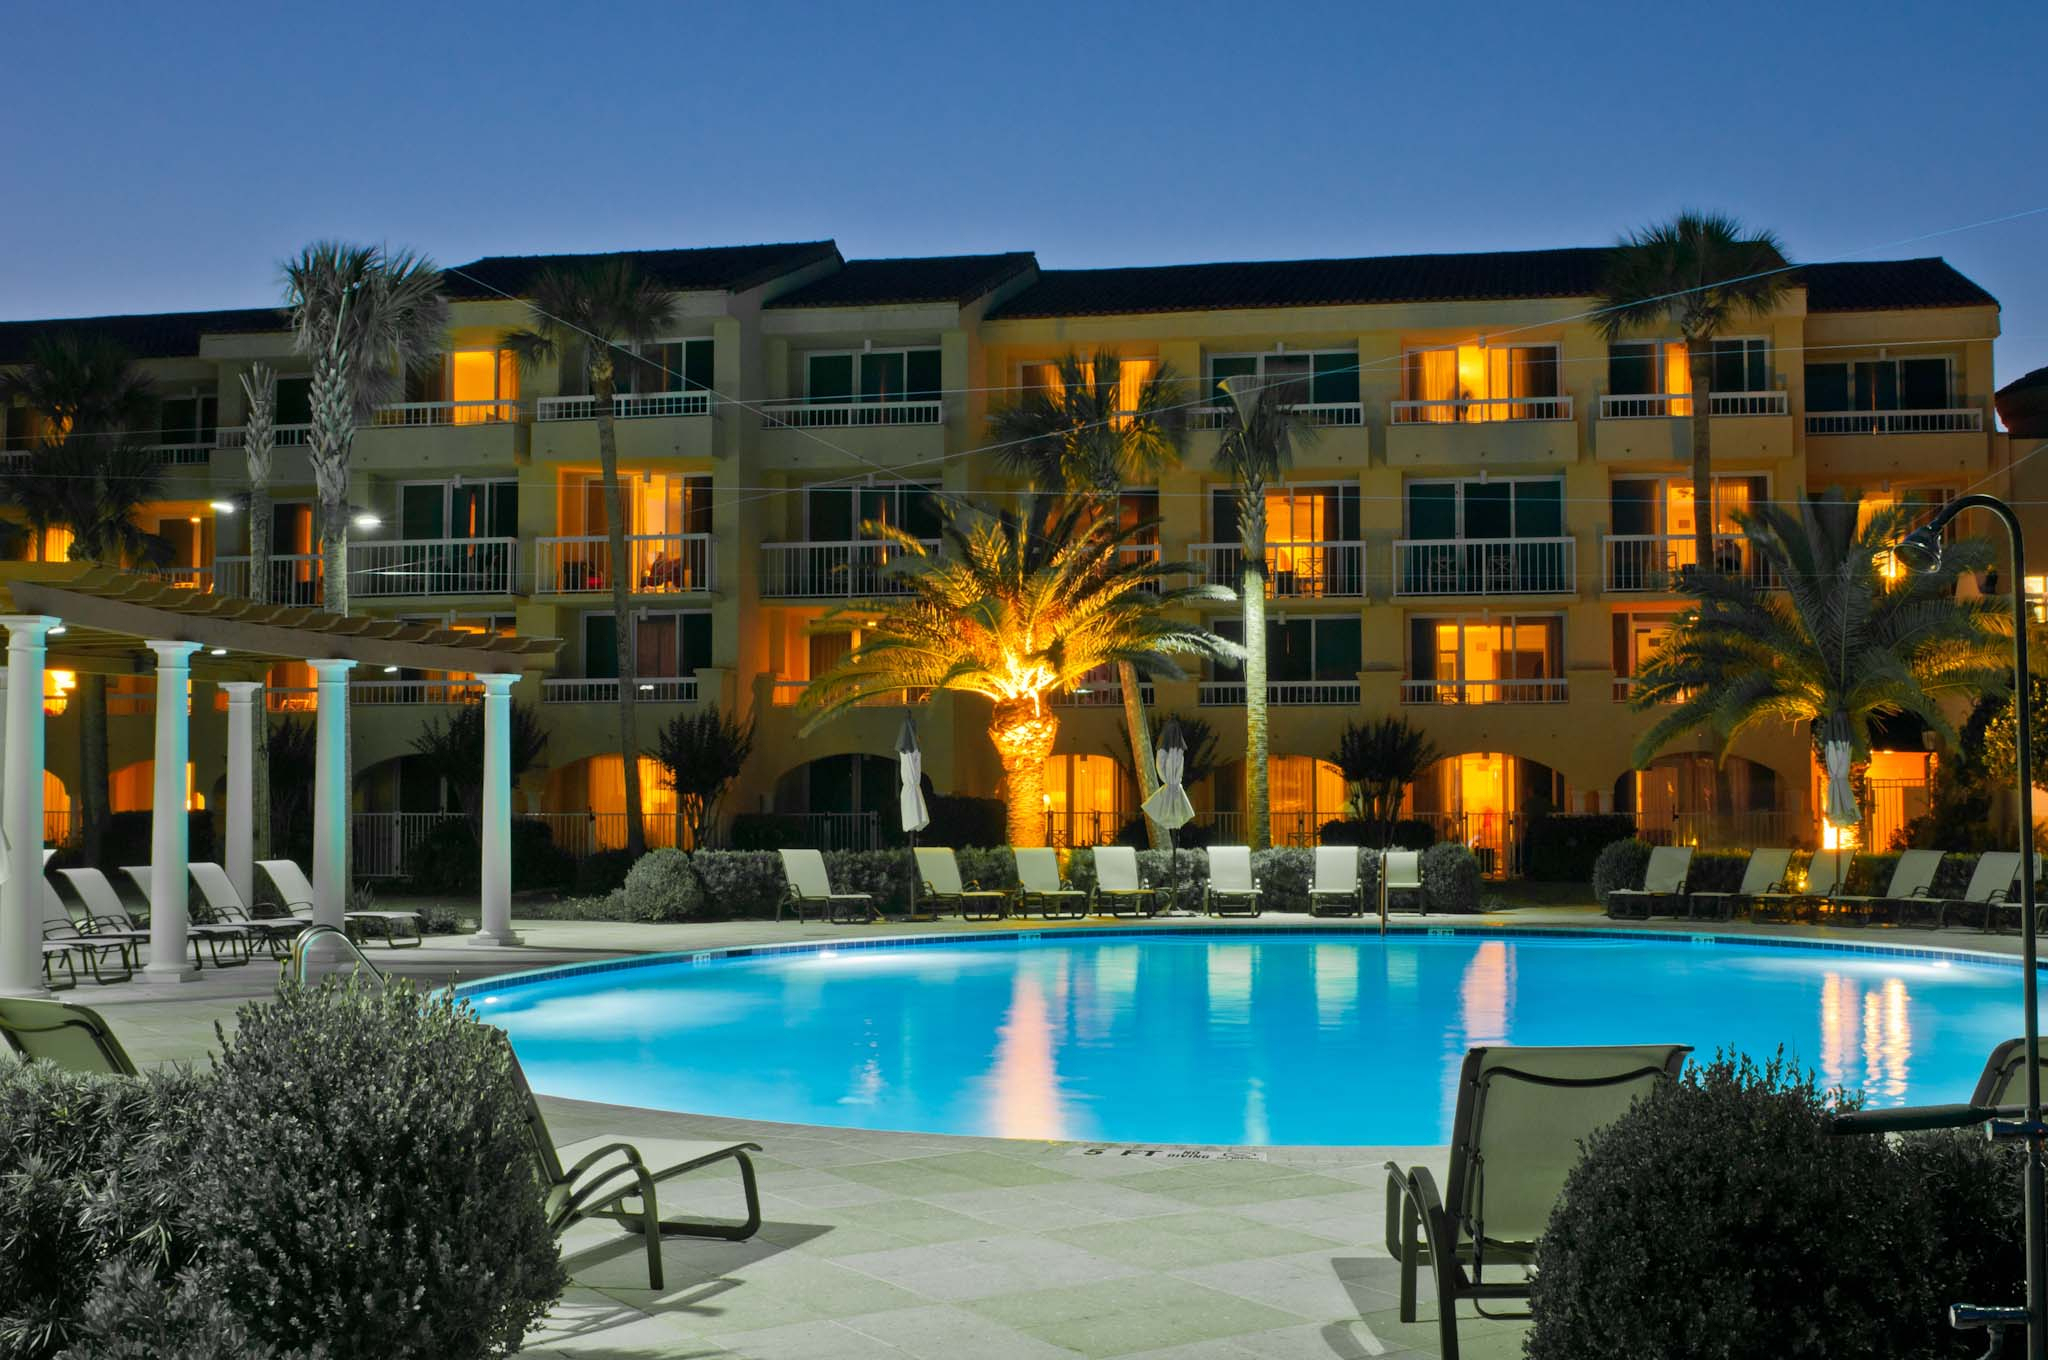 King and Prince Resort Review, The King and Prince Review St. Simon's Island, The King and Prince St. Simon's, St. Simon's Island Resorts, Georgia Beach Resorts